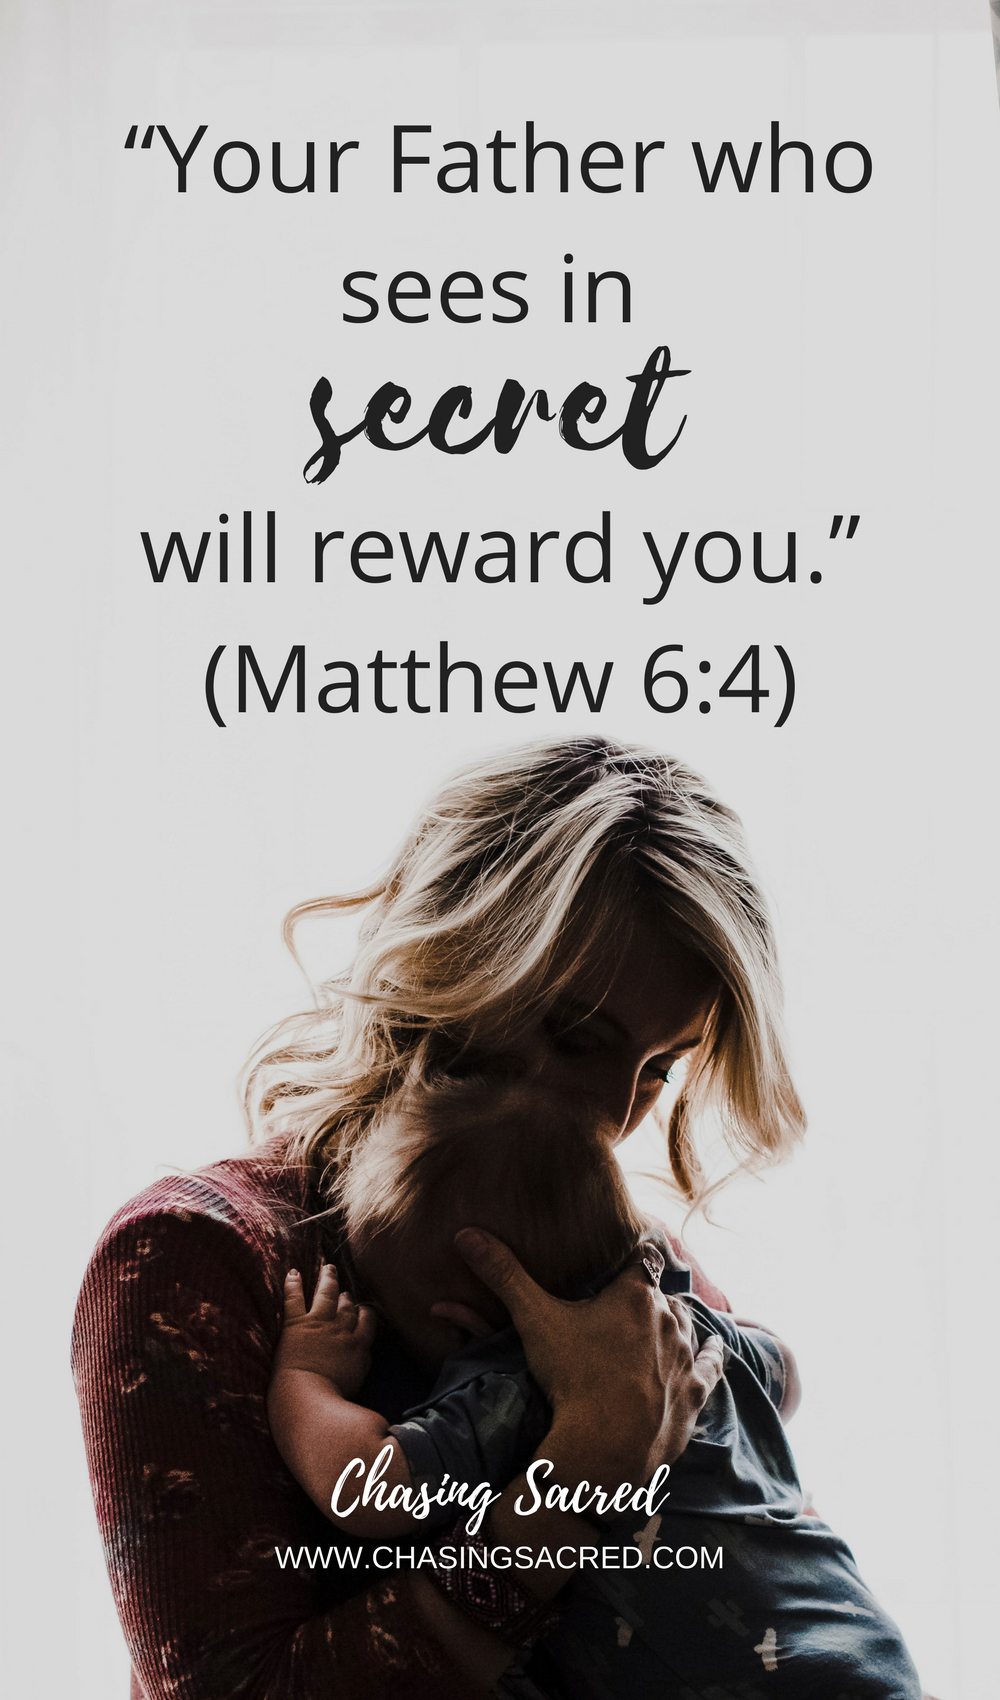 Your Father who sees in secret will reward you | Chasing Sacred